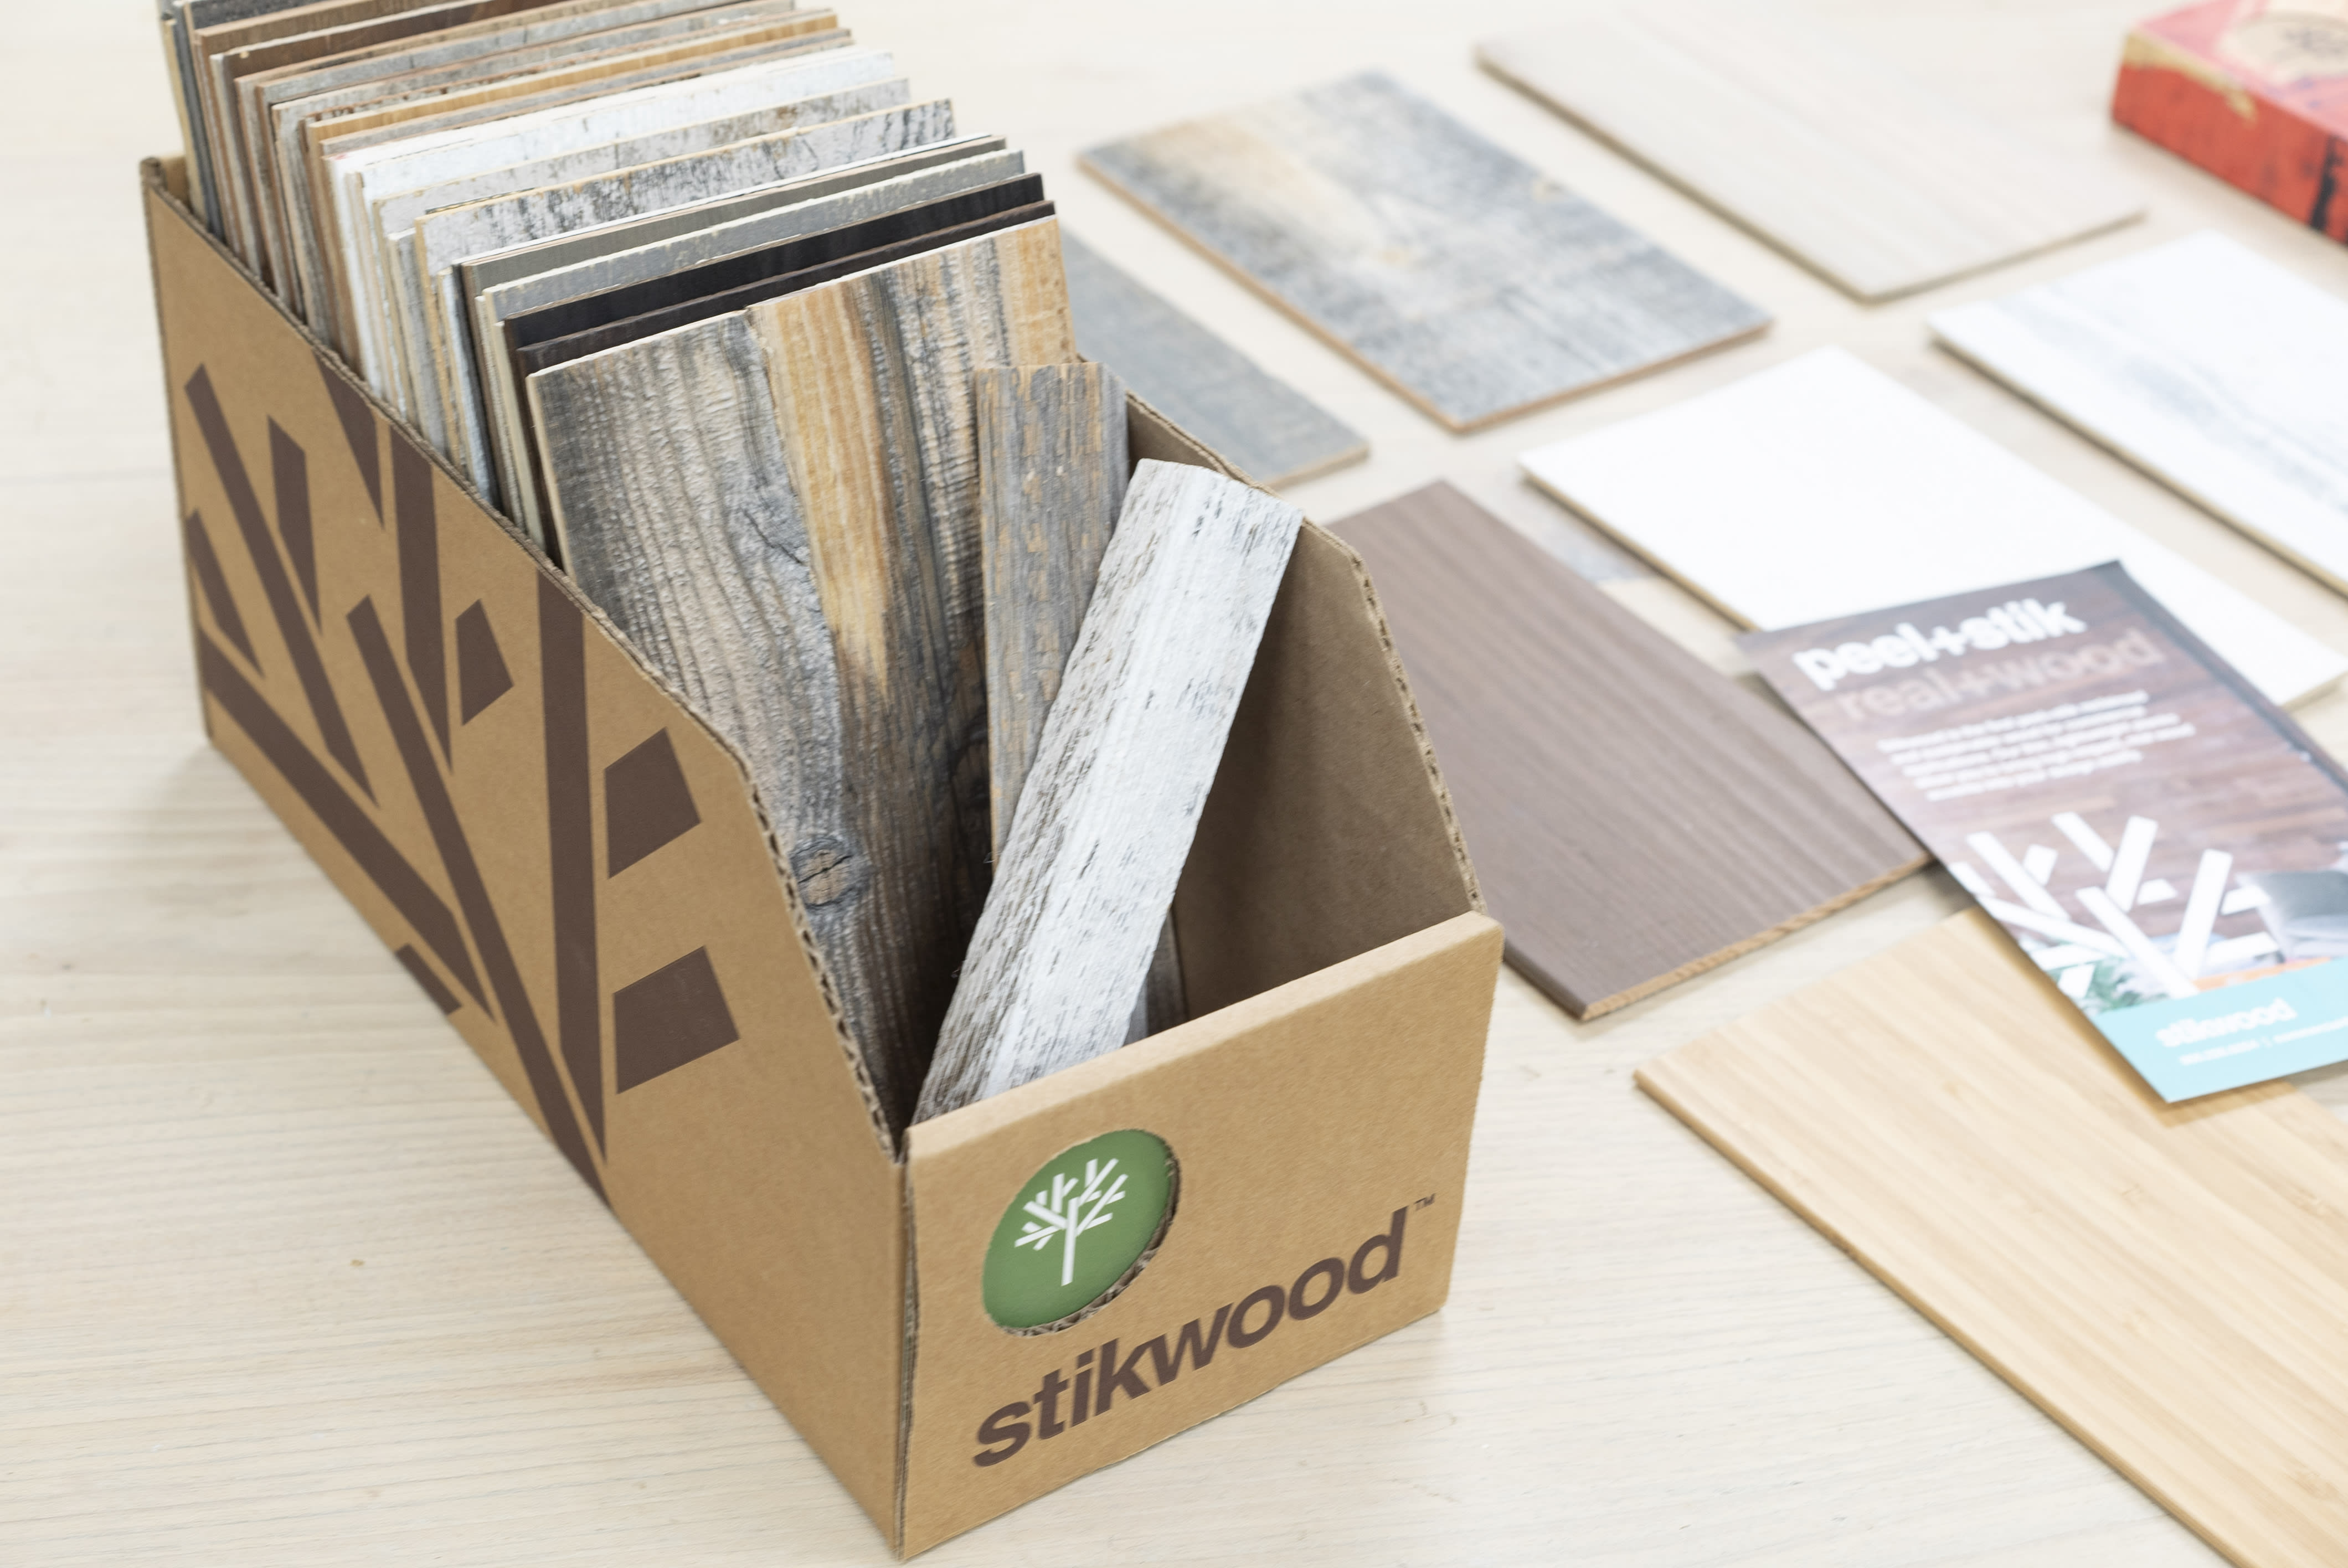 Stikwood peel and stick real wood wall and ceiling panels architect and designer sample kit.